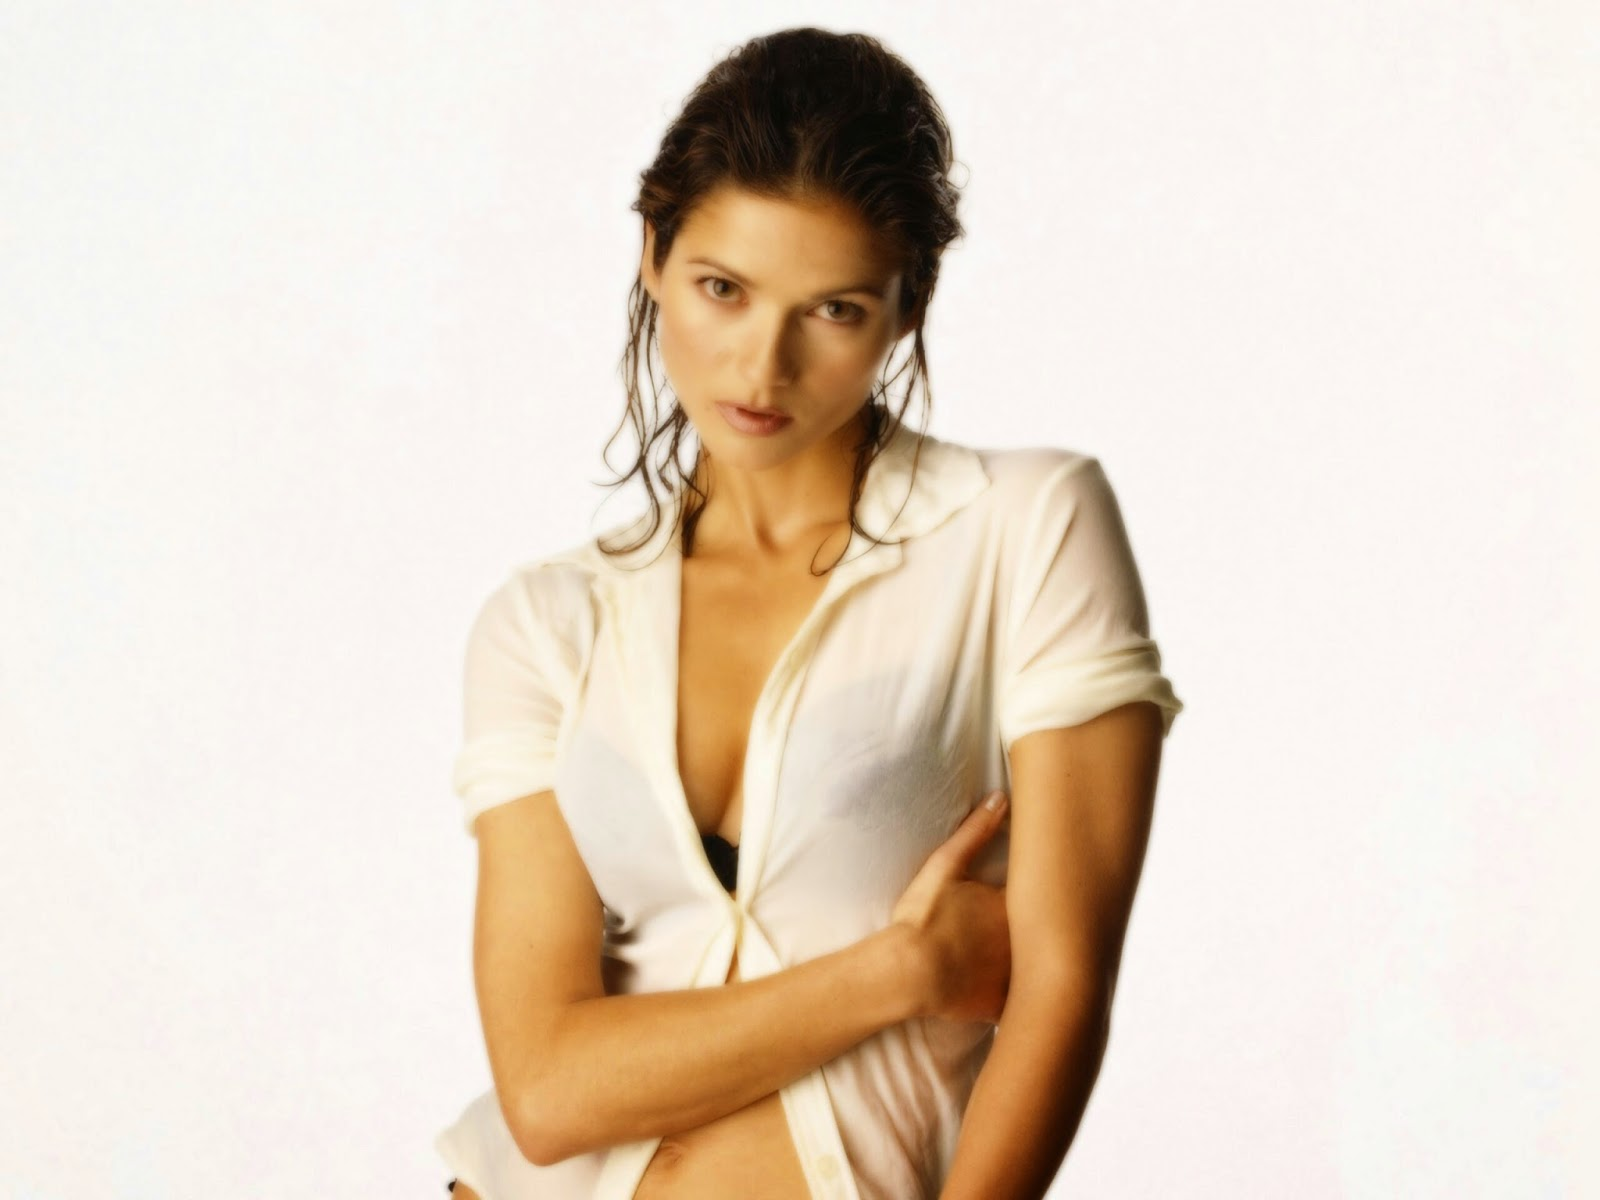 Jill Hennessy Hd Wallpapers Free Download